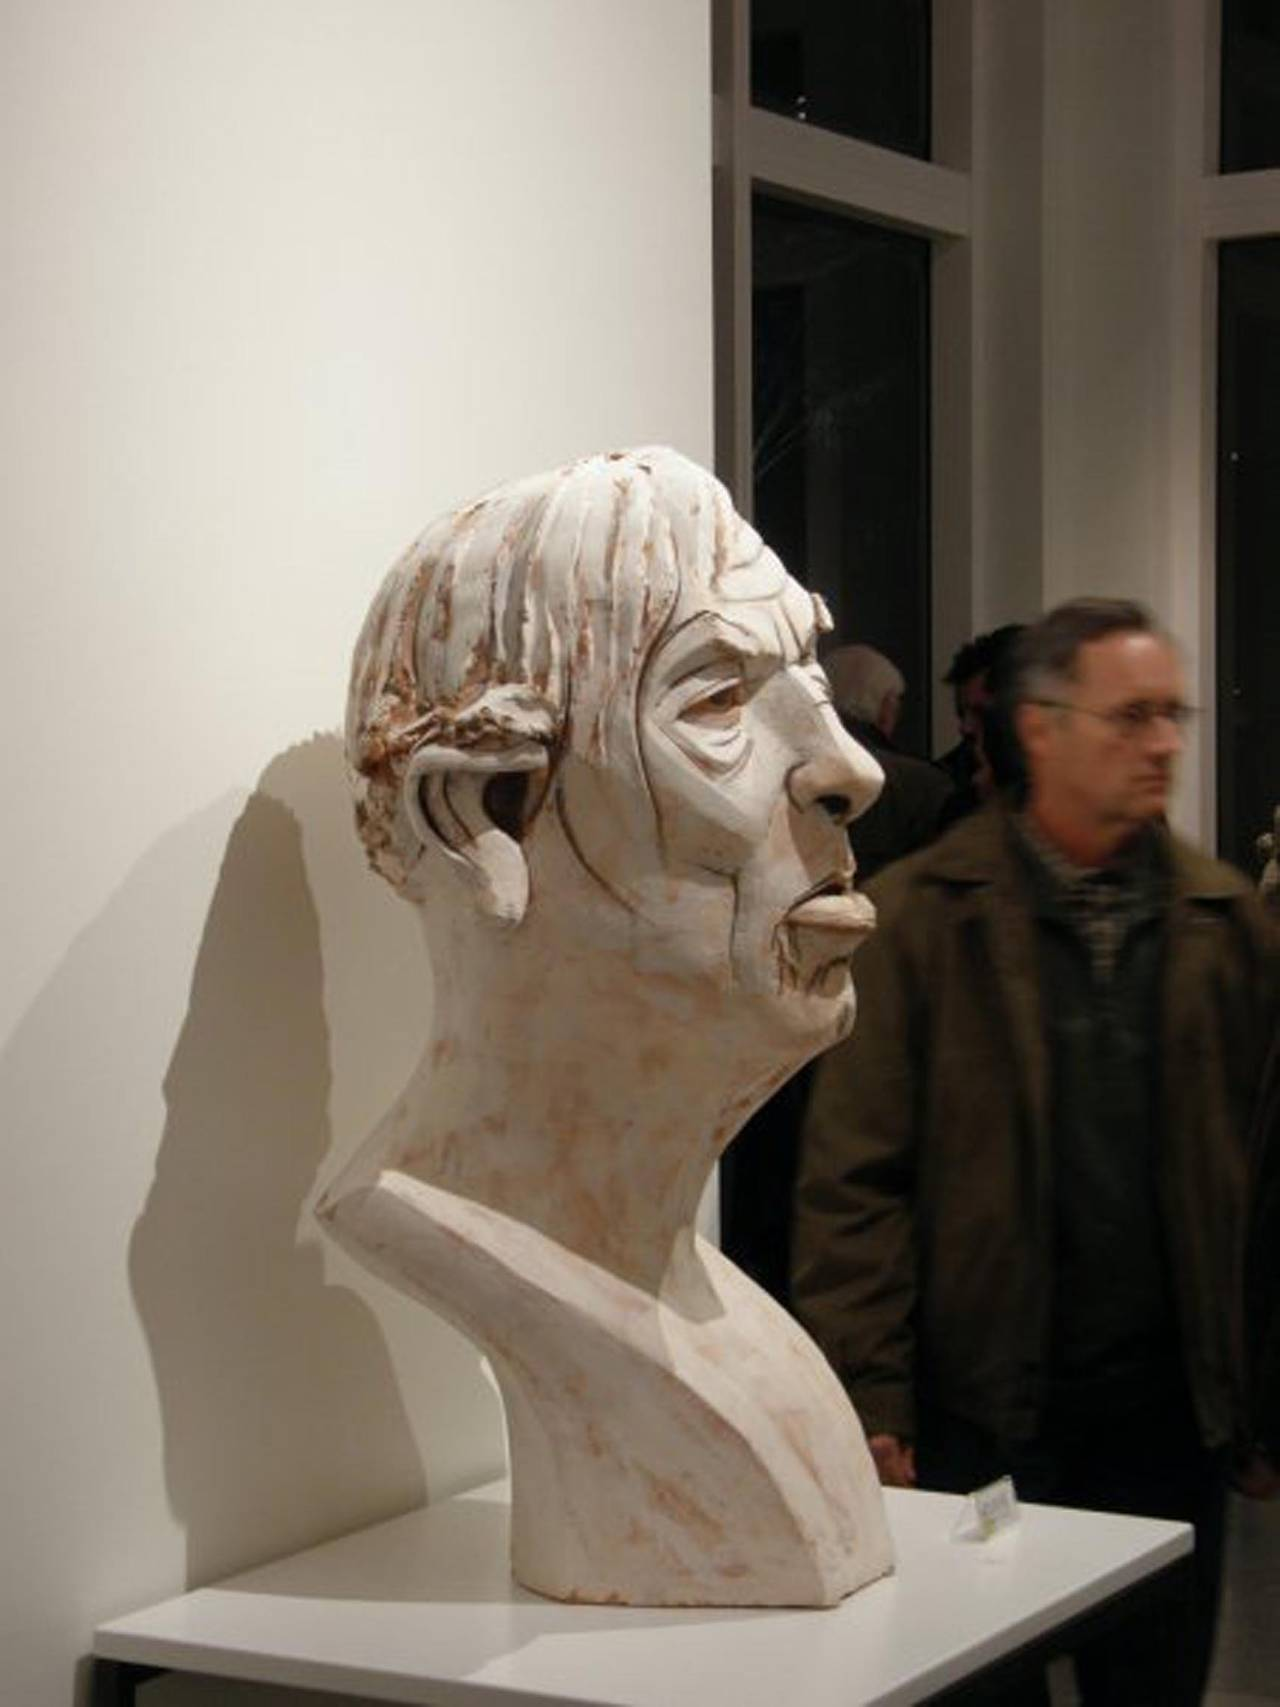 Terracotta Sculpture by renown sculptor Chris Riccardo from a series he did based on mug shots will ship with custom crate sizes are approximate Terracotta with under glazes  EDUCATION: 1990 - BFA- College of Fine Arts, Boston University, Boston,